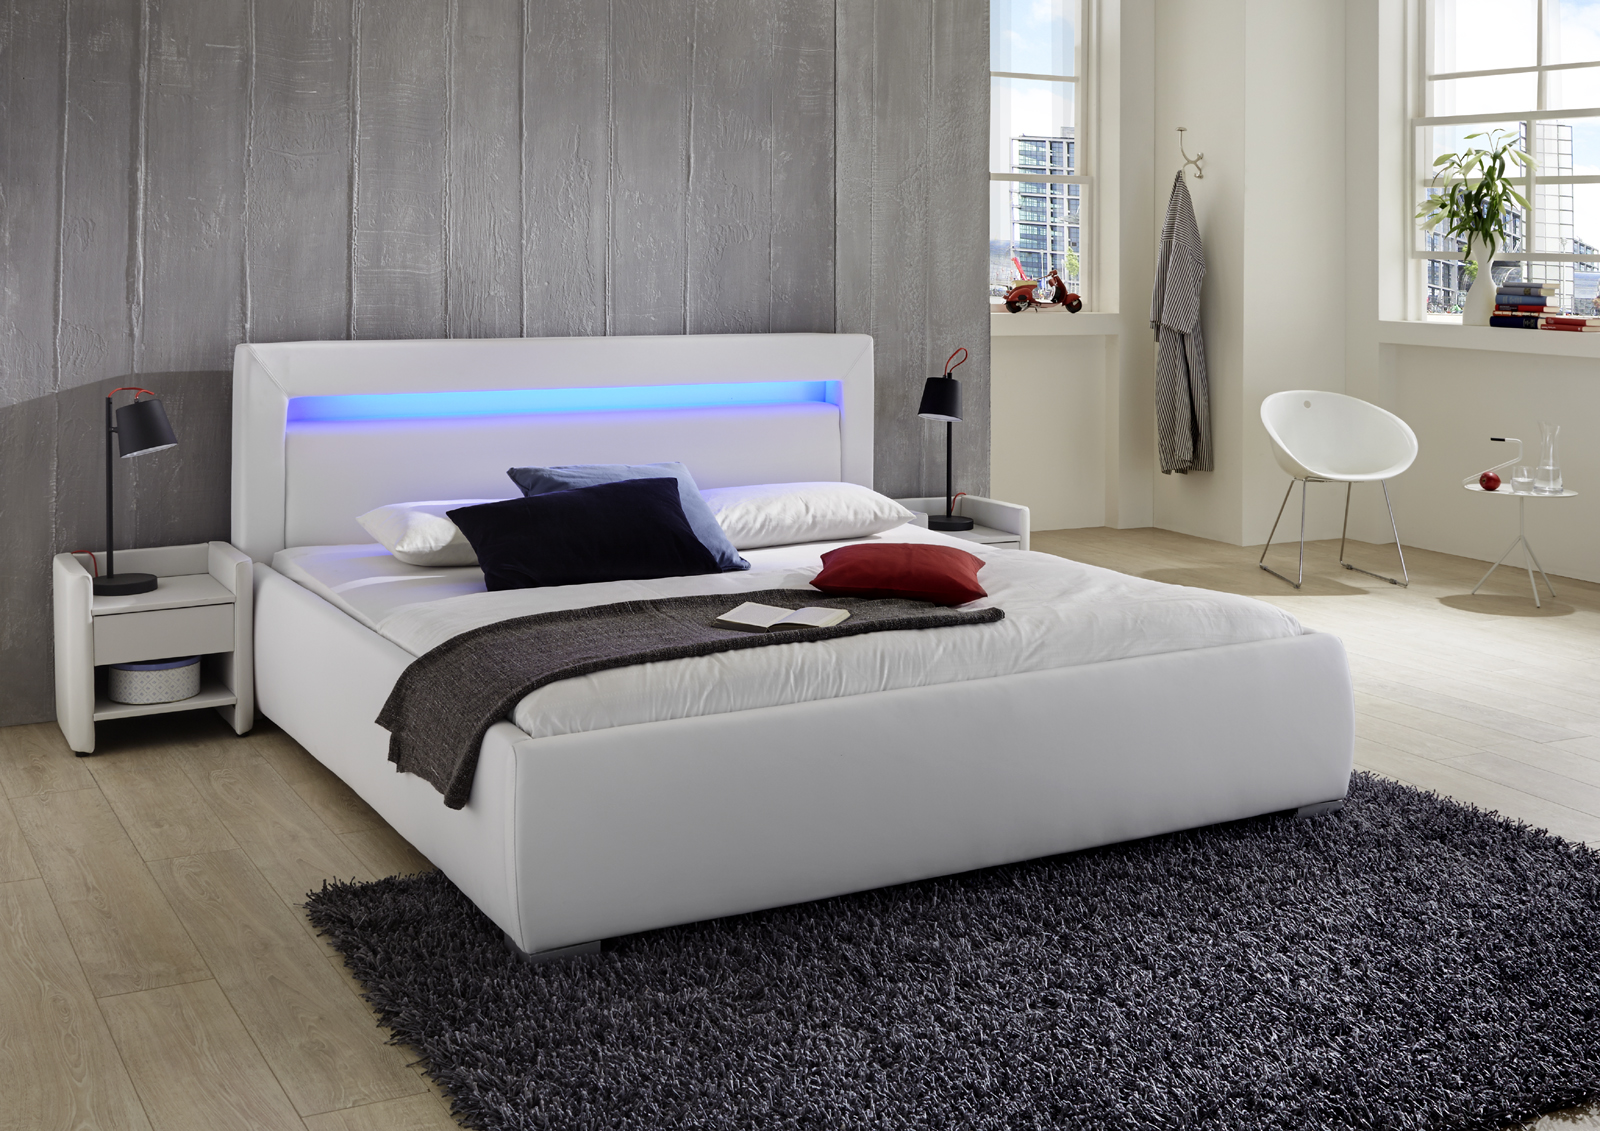 sam polsterbett 120 x 200 cm wei lumina auf lager. Black Bedroom Furniture Sets. Home Design Ideas